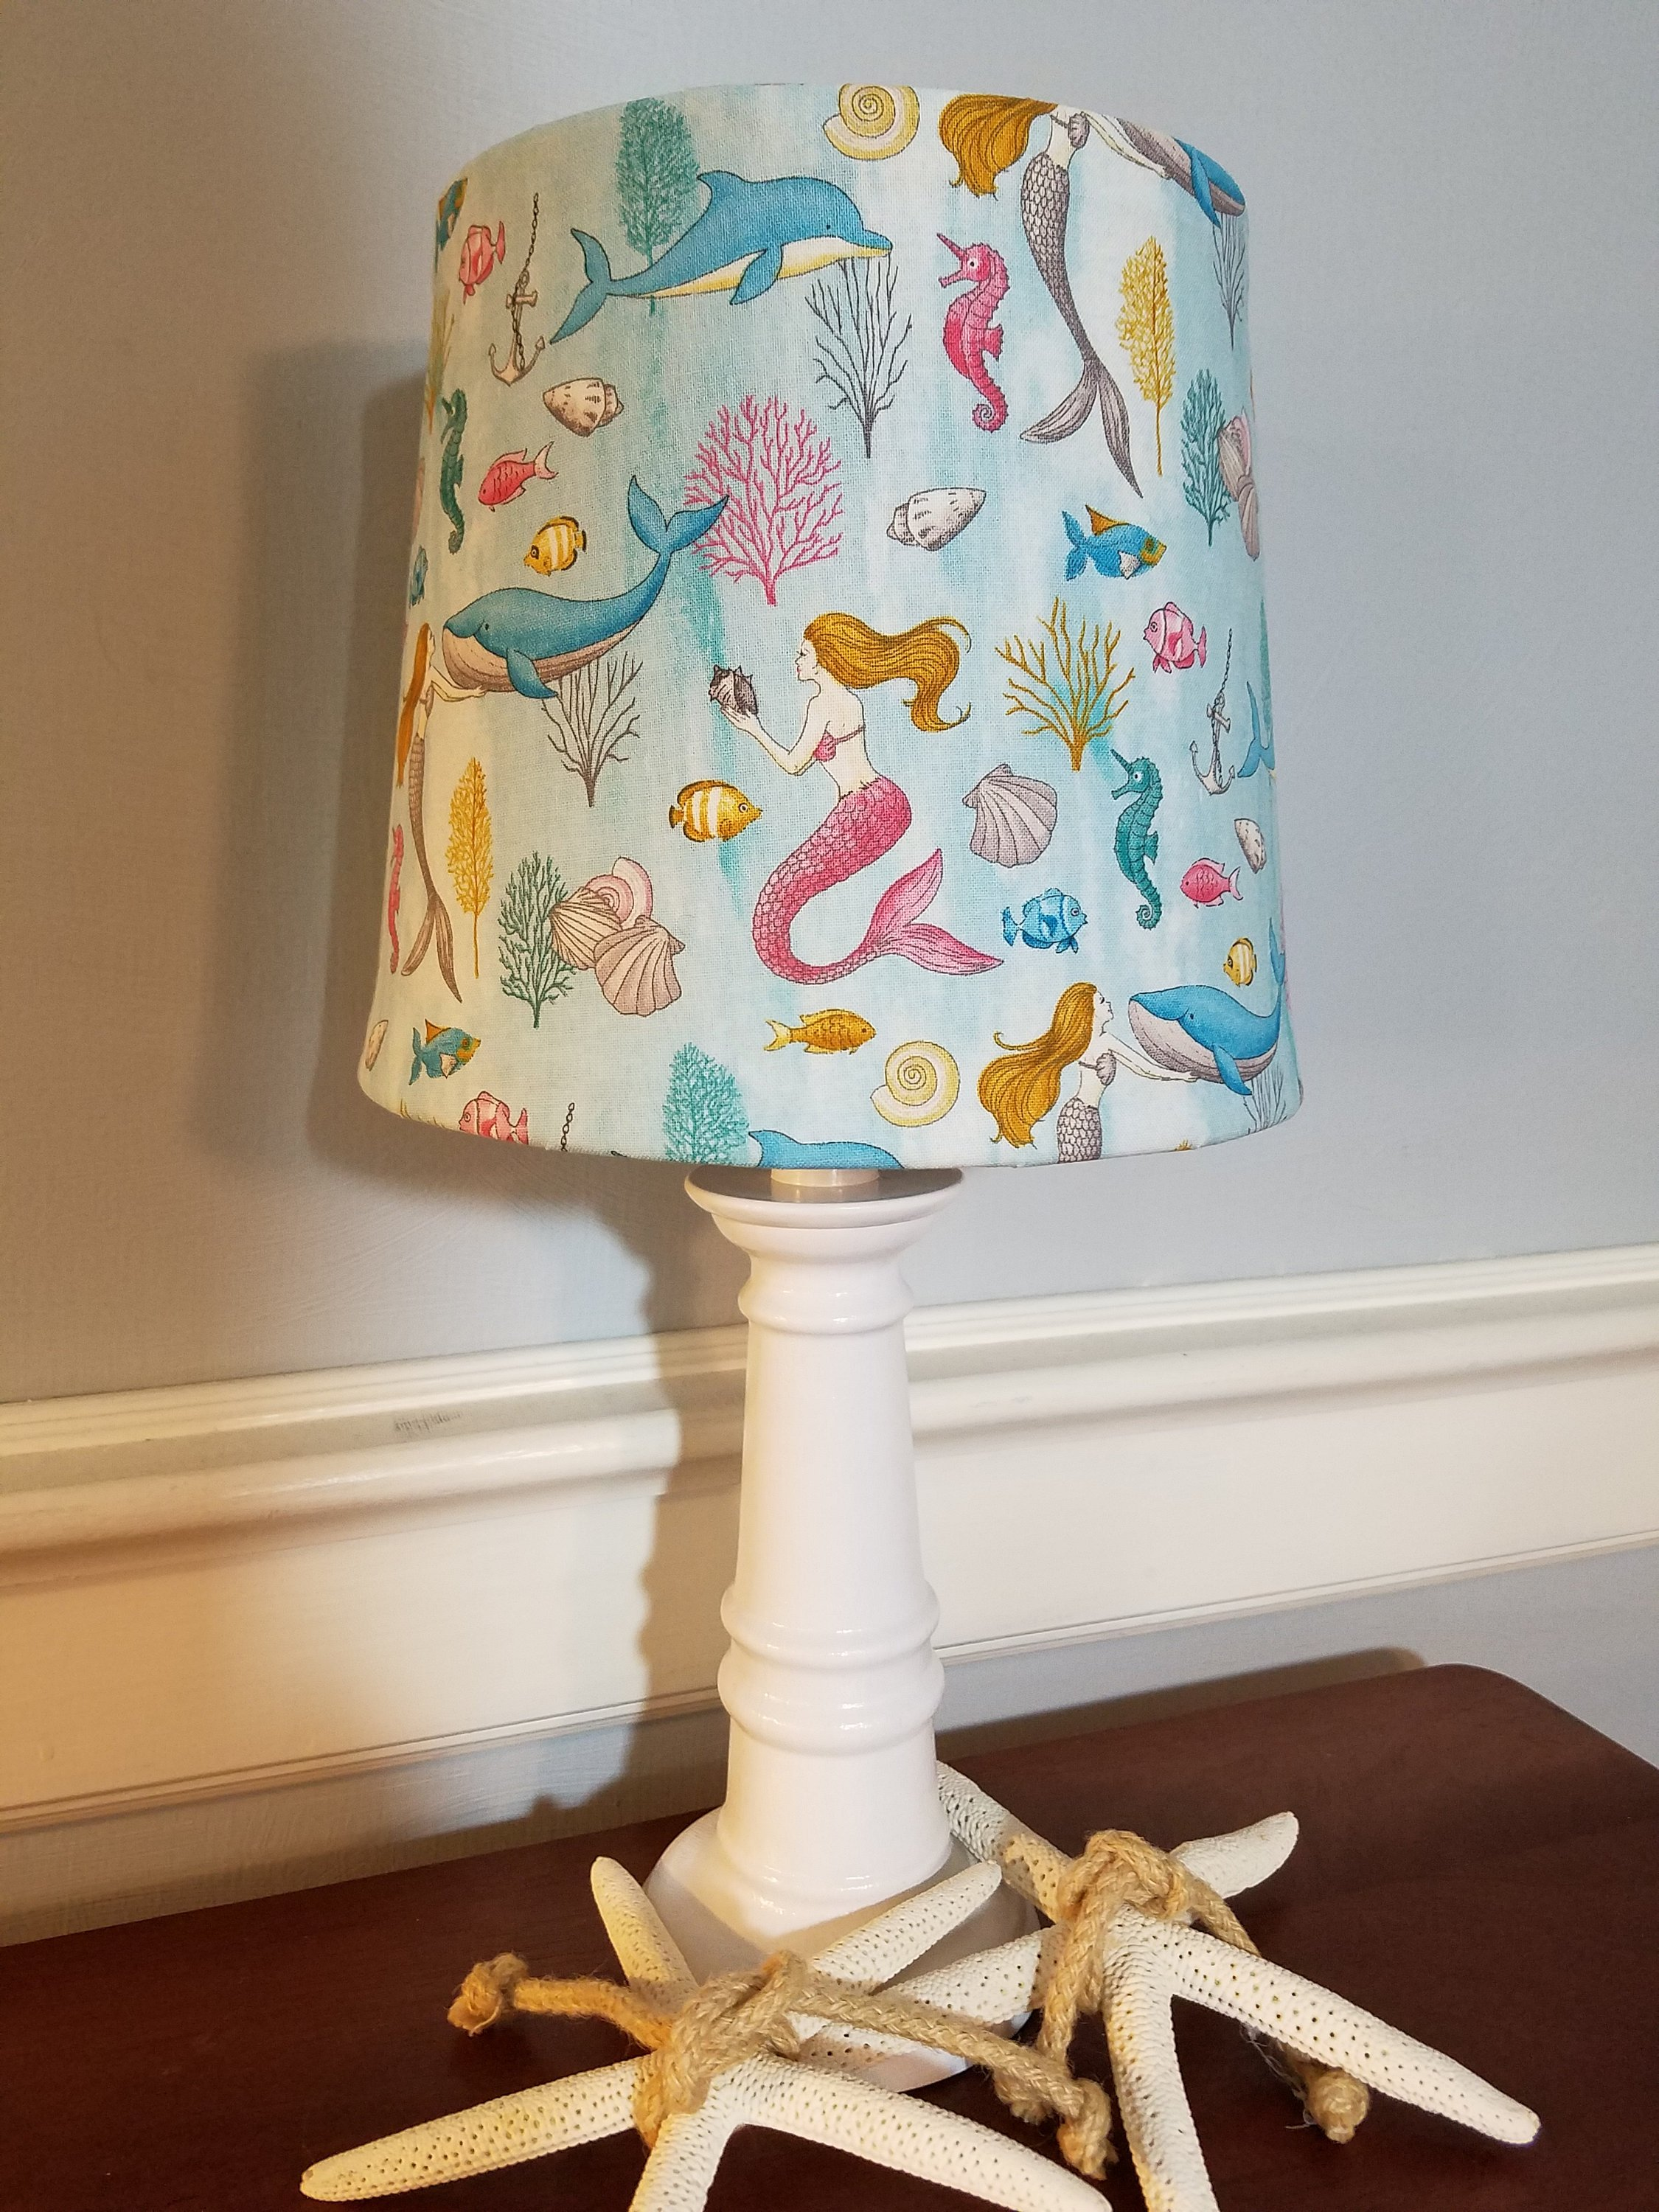 mermaid accent nursery lamp girl nautical theme etsy fullxfull table lamps bathroom floor storage cabinet clearance deck furniture homemade wood coffee gray chair monarch hall